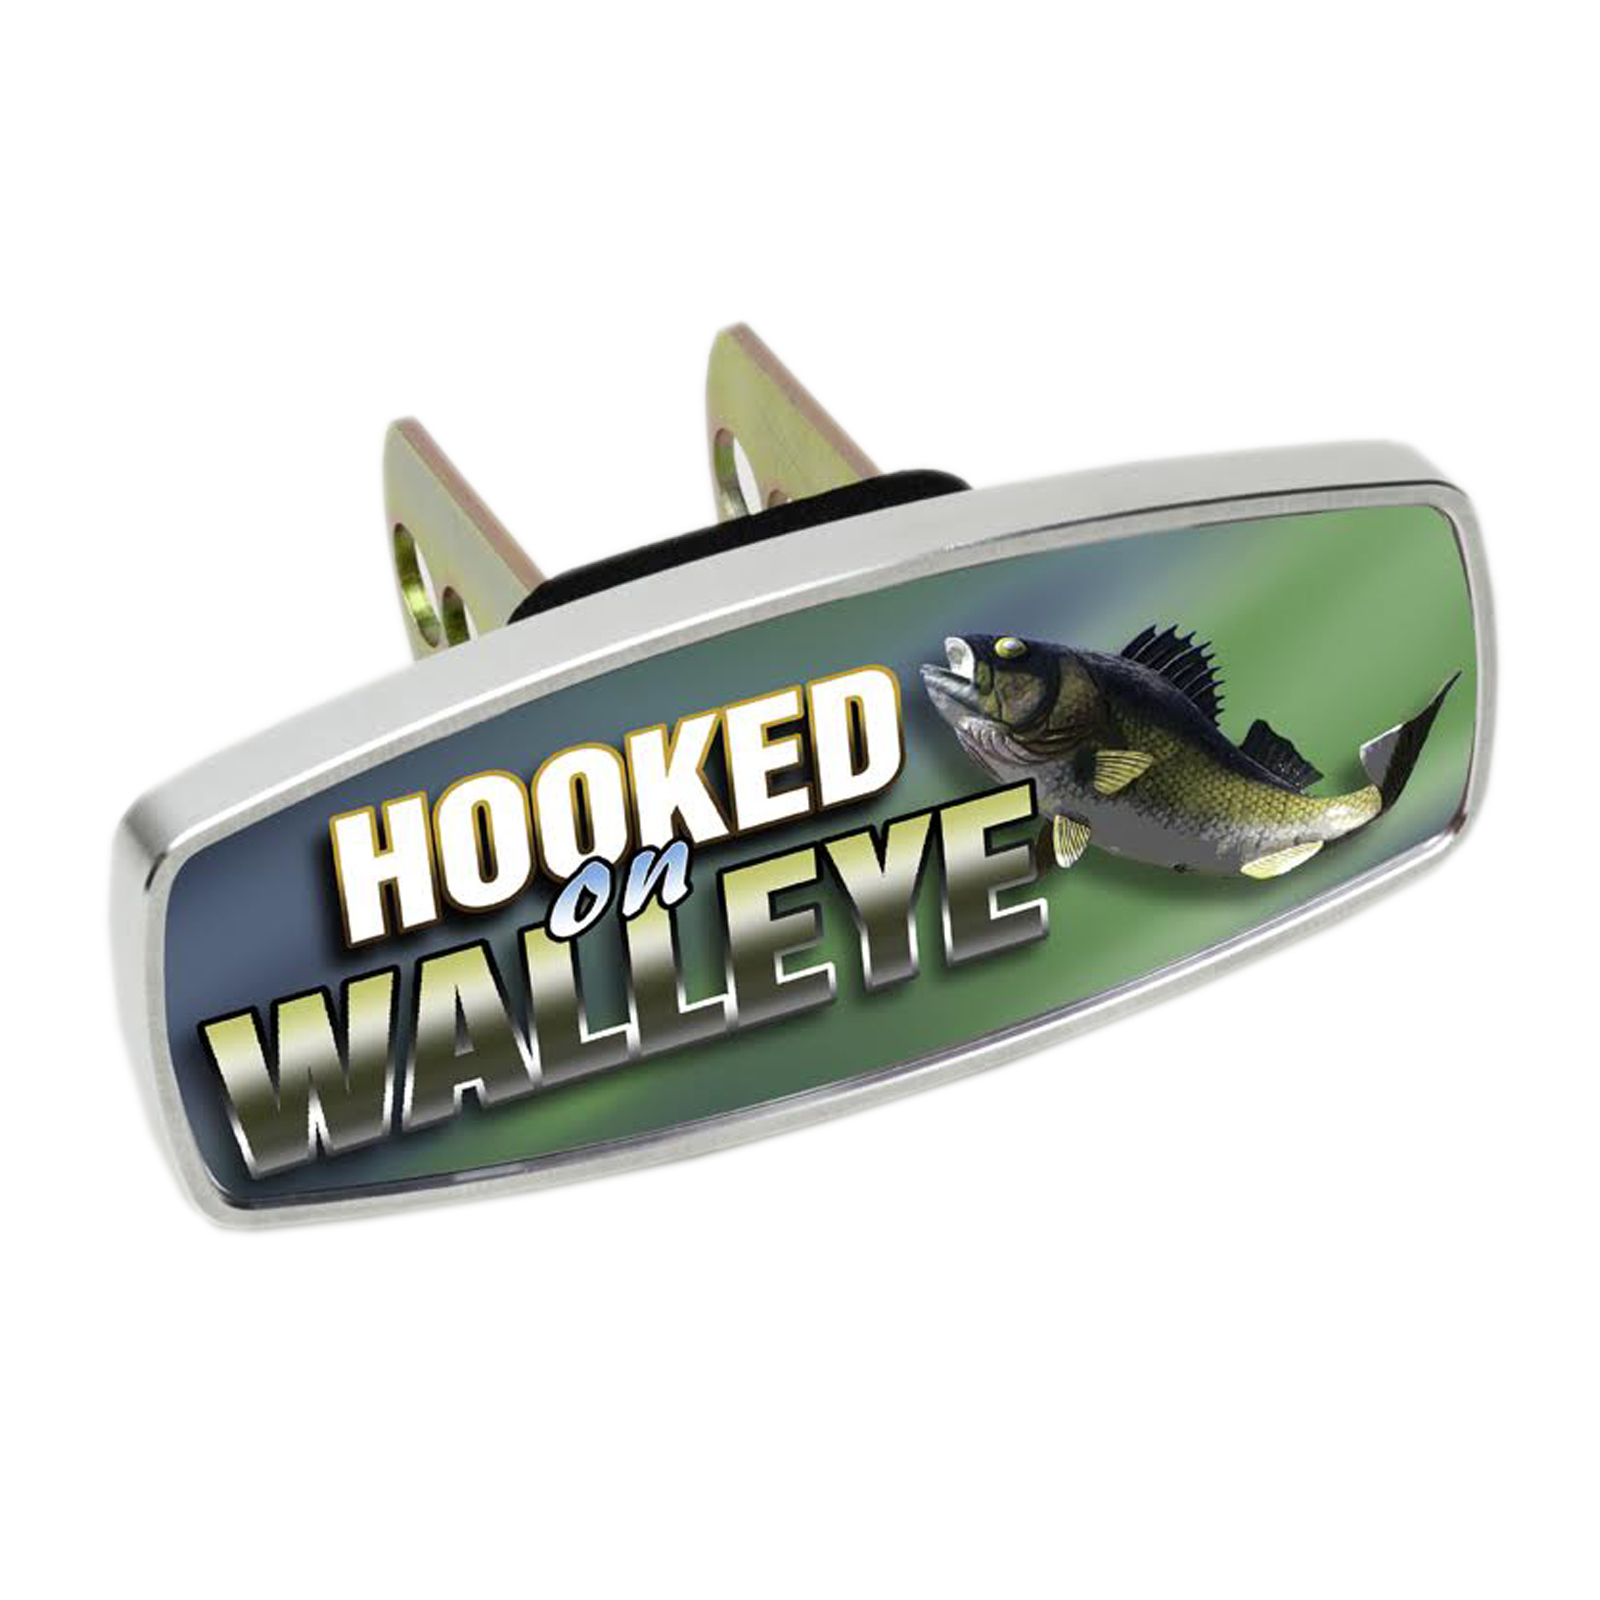 HitchMate Premier Series Hitch Cap Cover - Hooked on Walleye